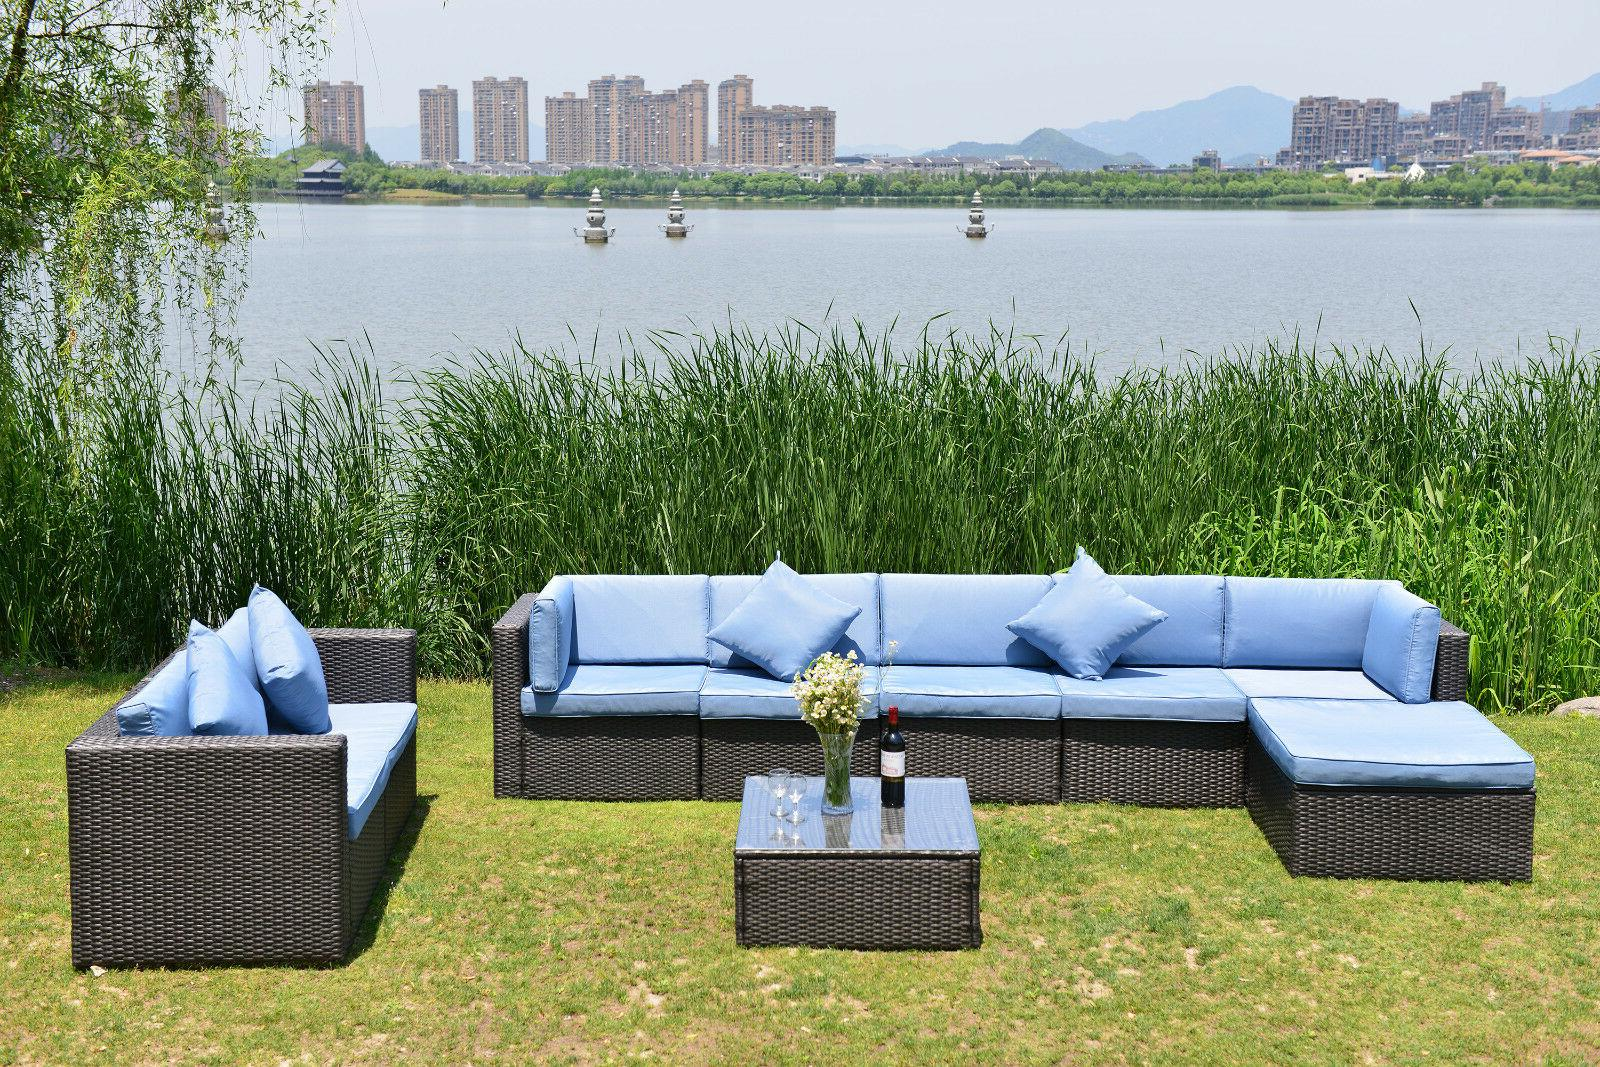 Patio Furniture Set Outdoor Wicker Cushioned Seat